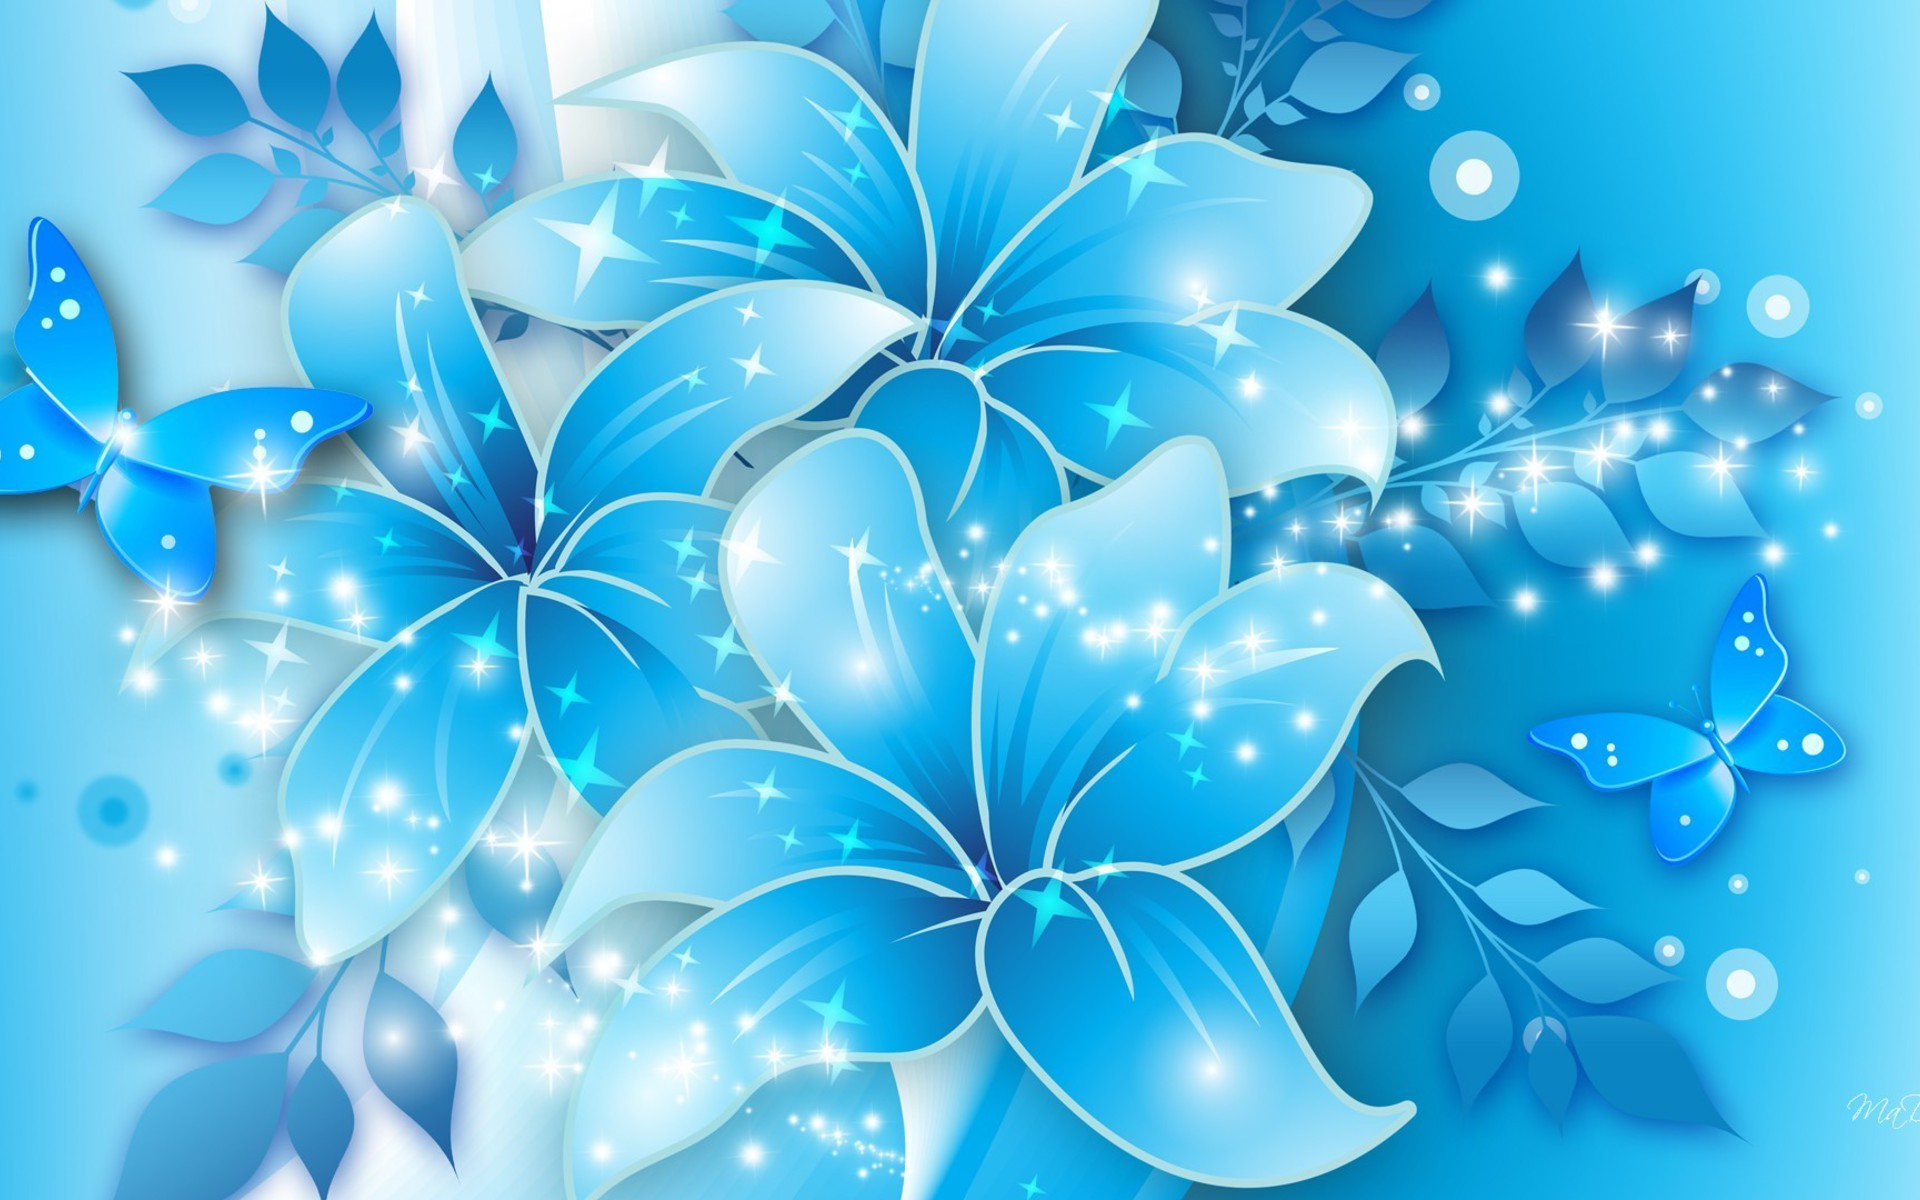 Background Pastel Biru Blue Butterflies Lilies Wallpaper | Allwallpaper.in #4048